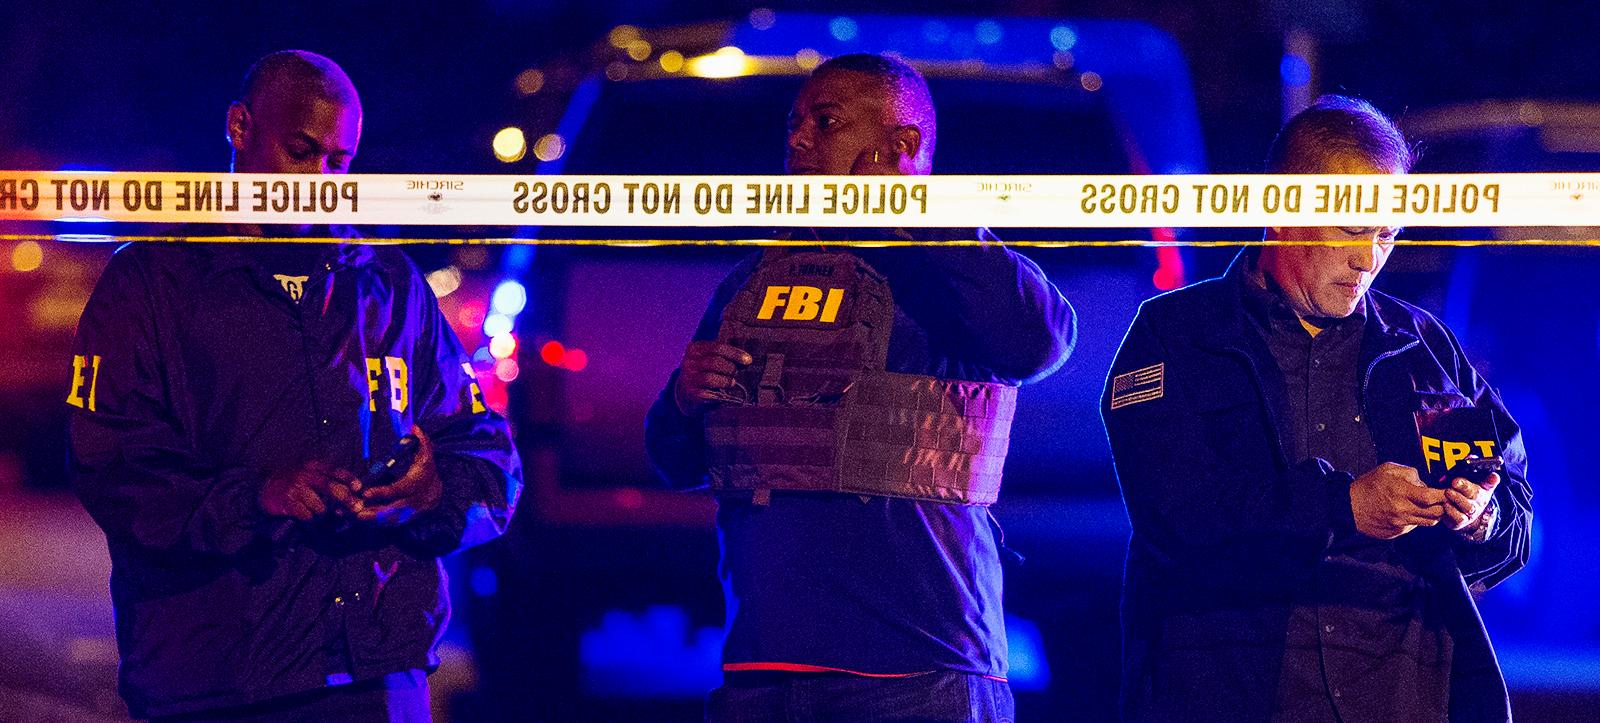 FBI agents work the scene of an explosion in Austin, Texas, Sunday, March 18, 2018. At least a few people were injured in another explosion in Texas' capital late Sunday, after three package bombs detonated this month in other parts of the city, killing two people and injuring two others. (Nick Wagner/Austin American-Statesman via AP)